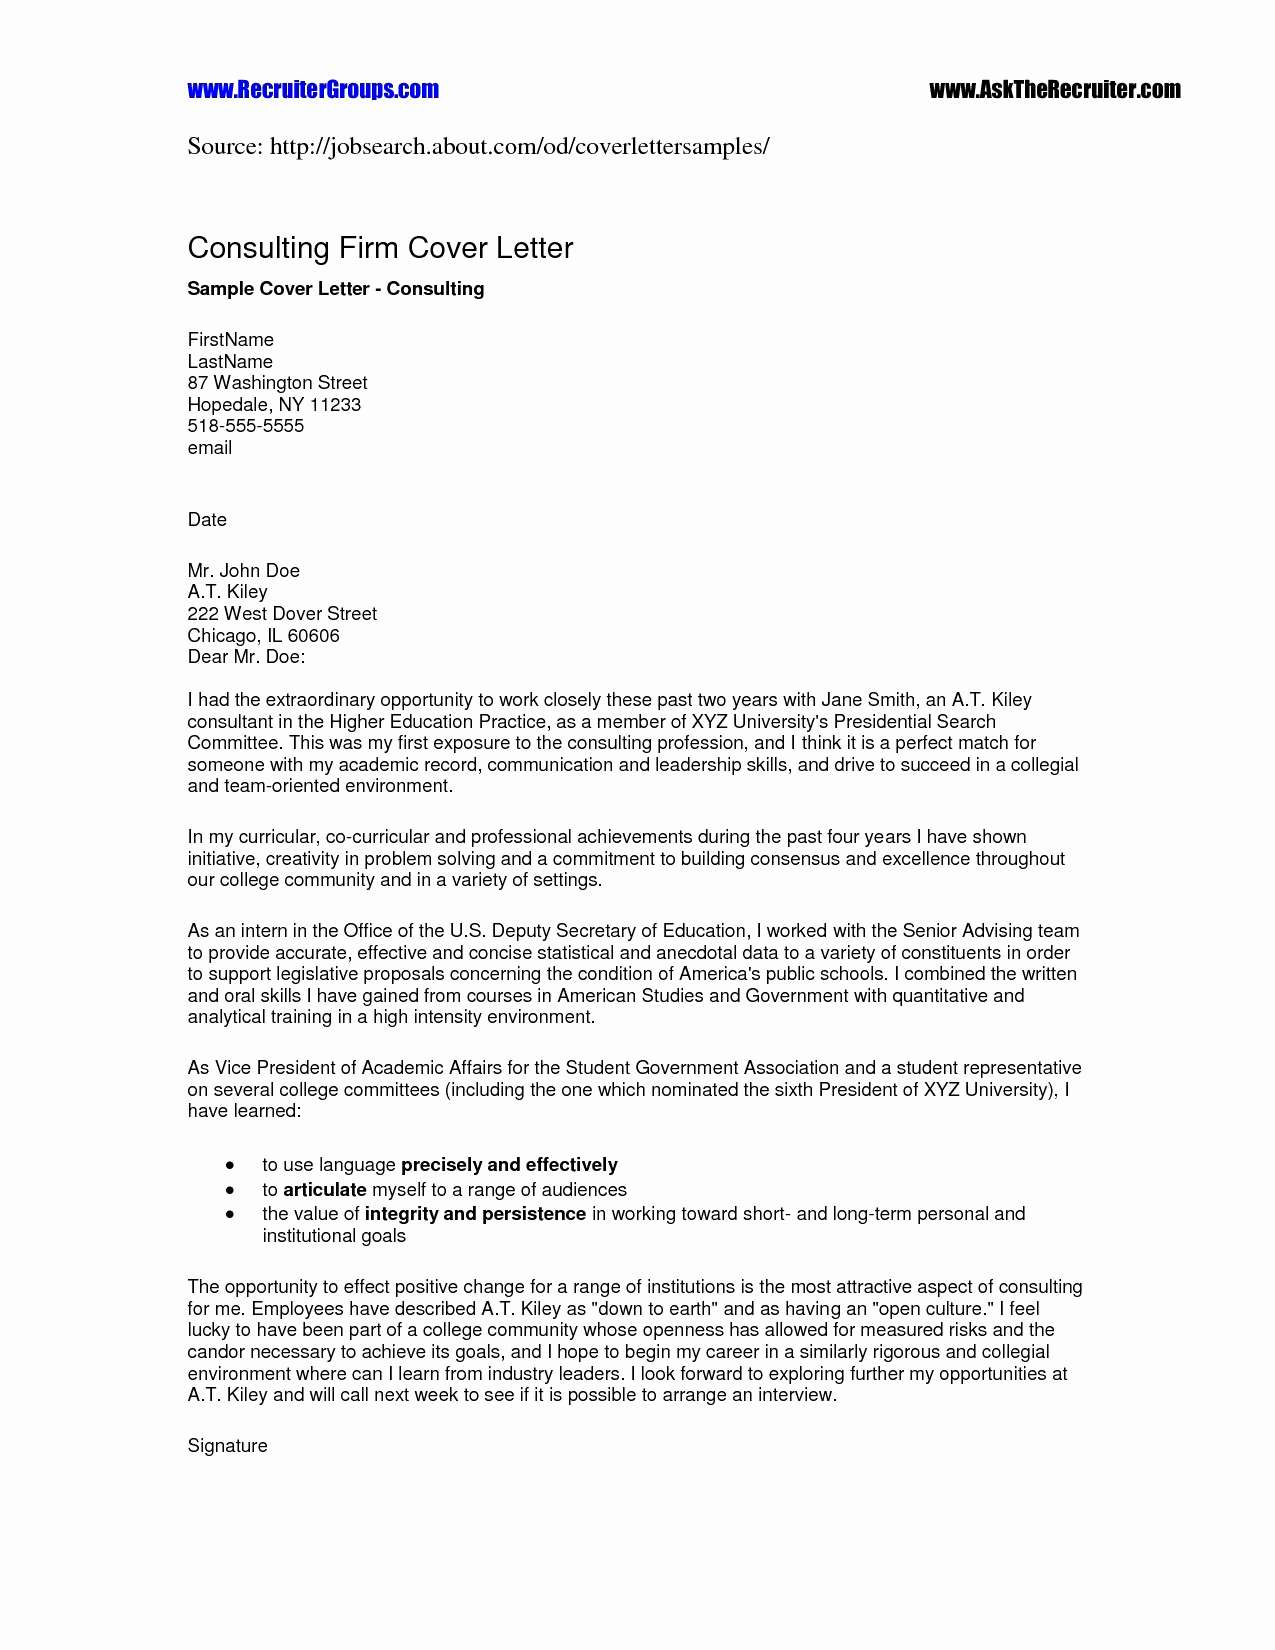 Resume Genius Cover Letter Template - Resume Genius Cover Letter Lovely Cover Letter Template Image